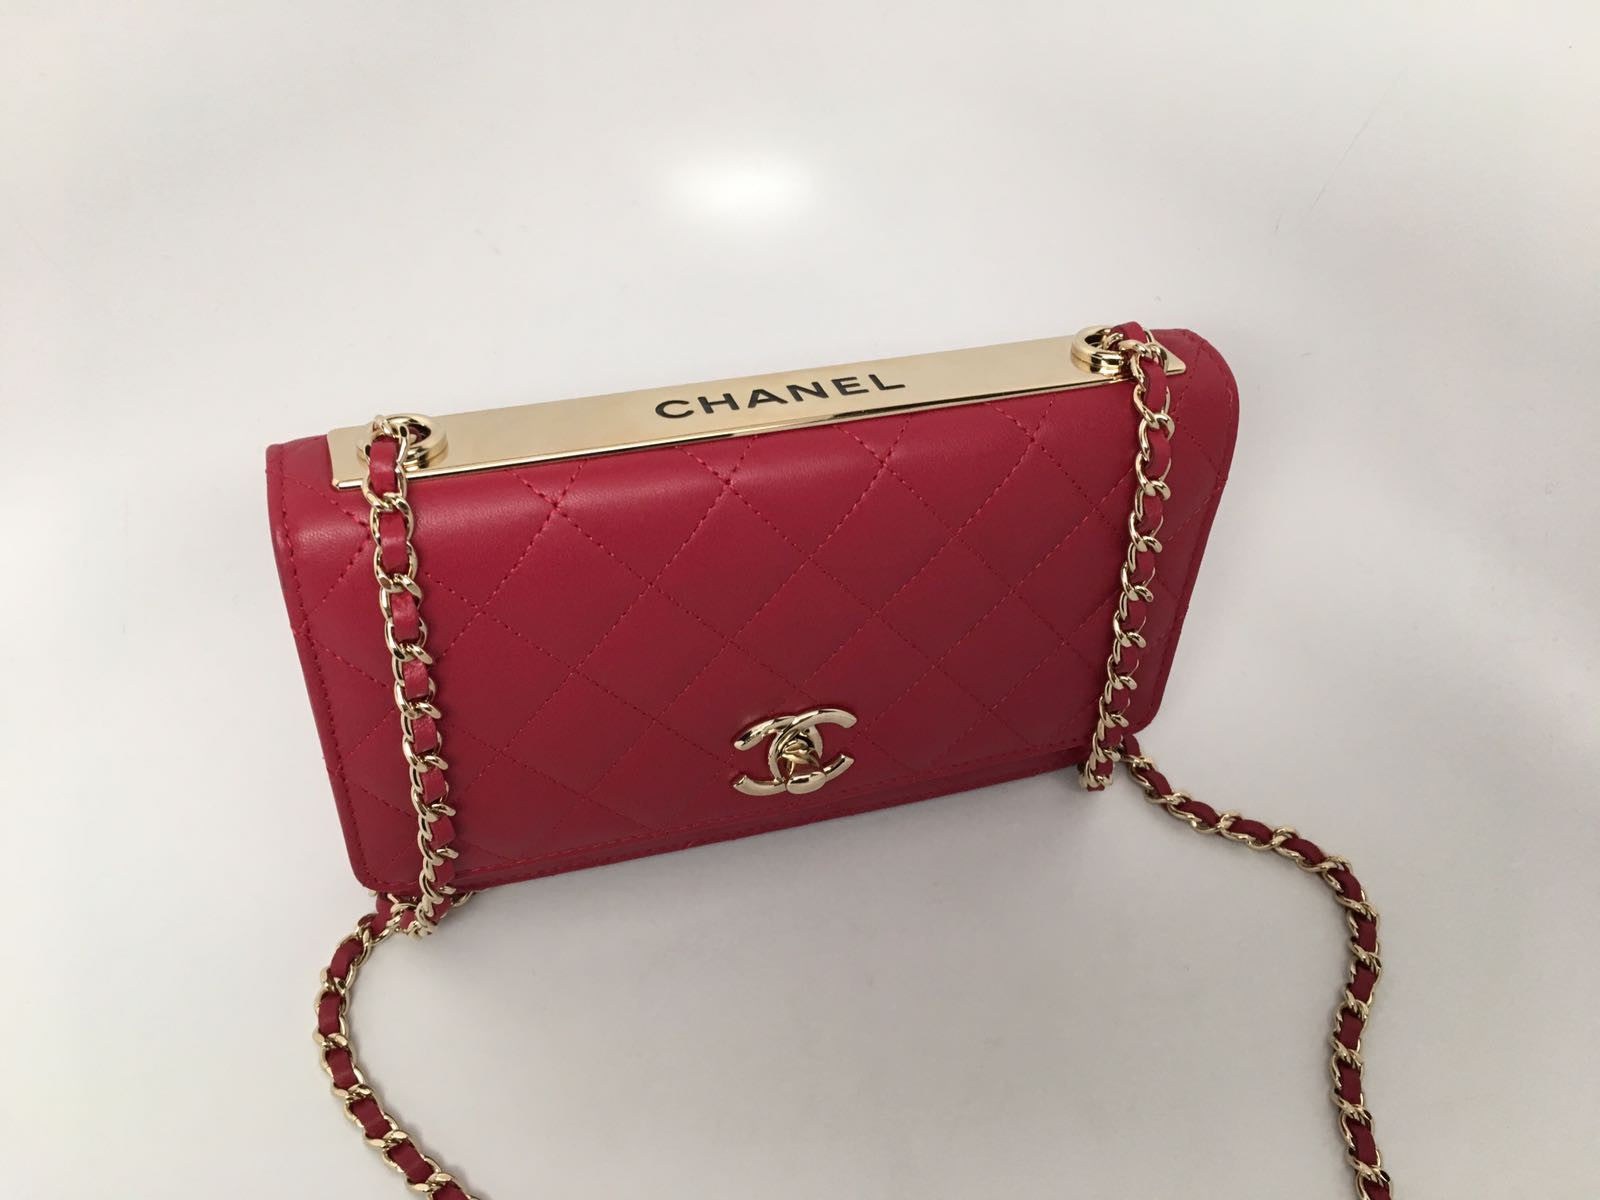 CHANEL LAMBSKIN WALLET ON CHAIN IN RUBY RED